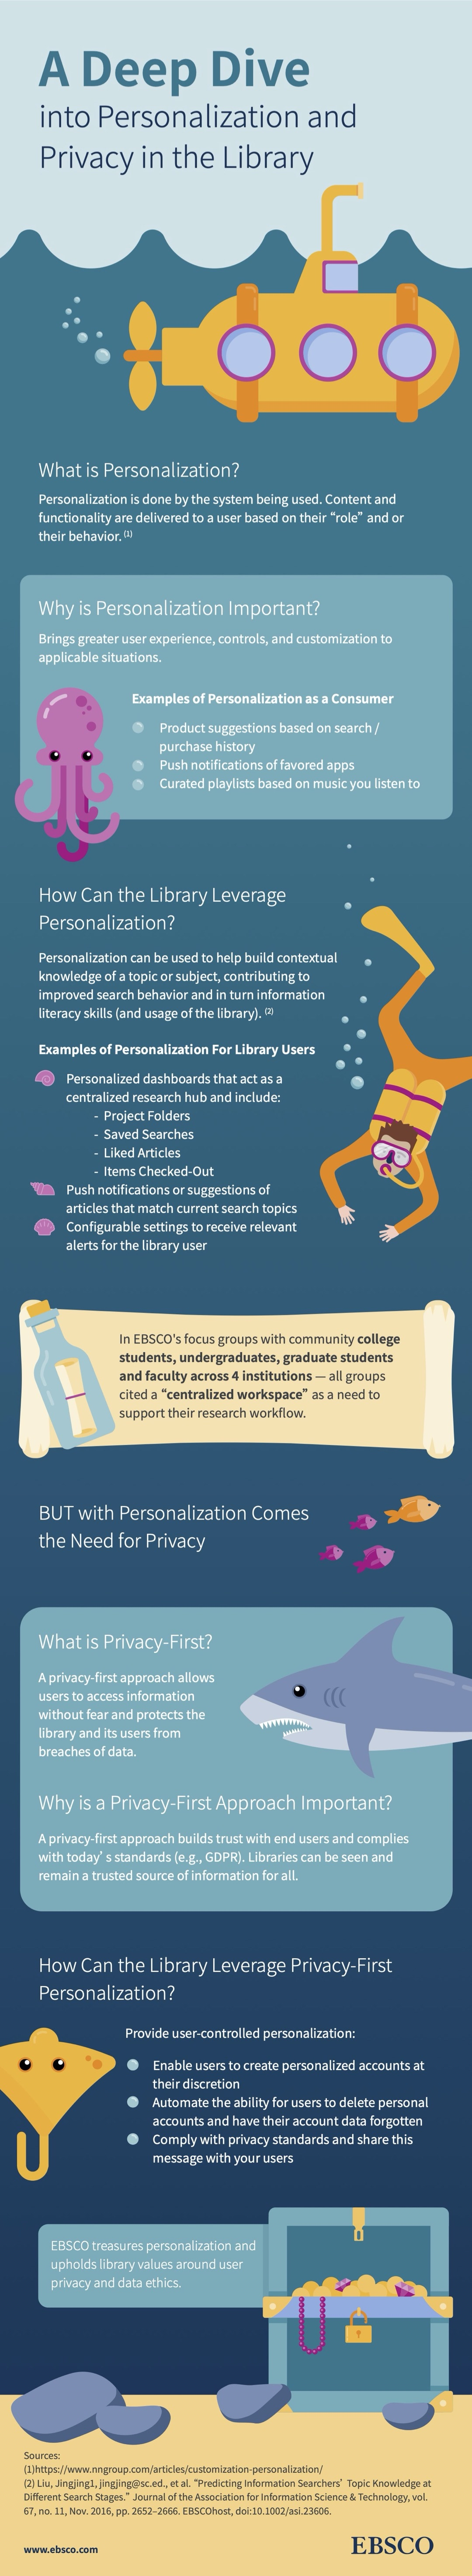 Privacy and personalization in libraries - full infographic